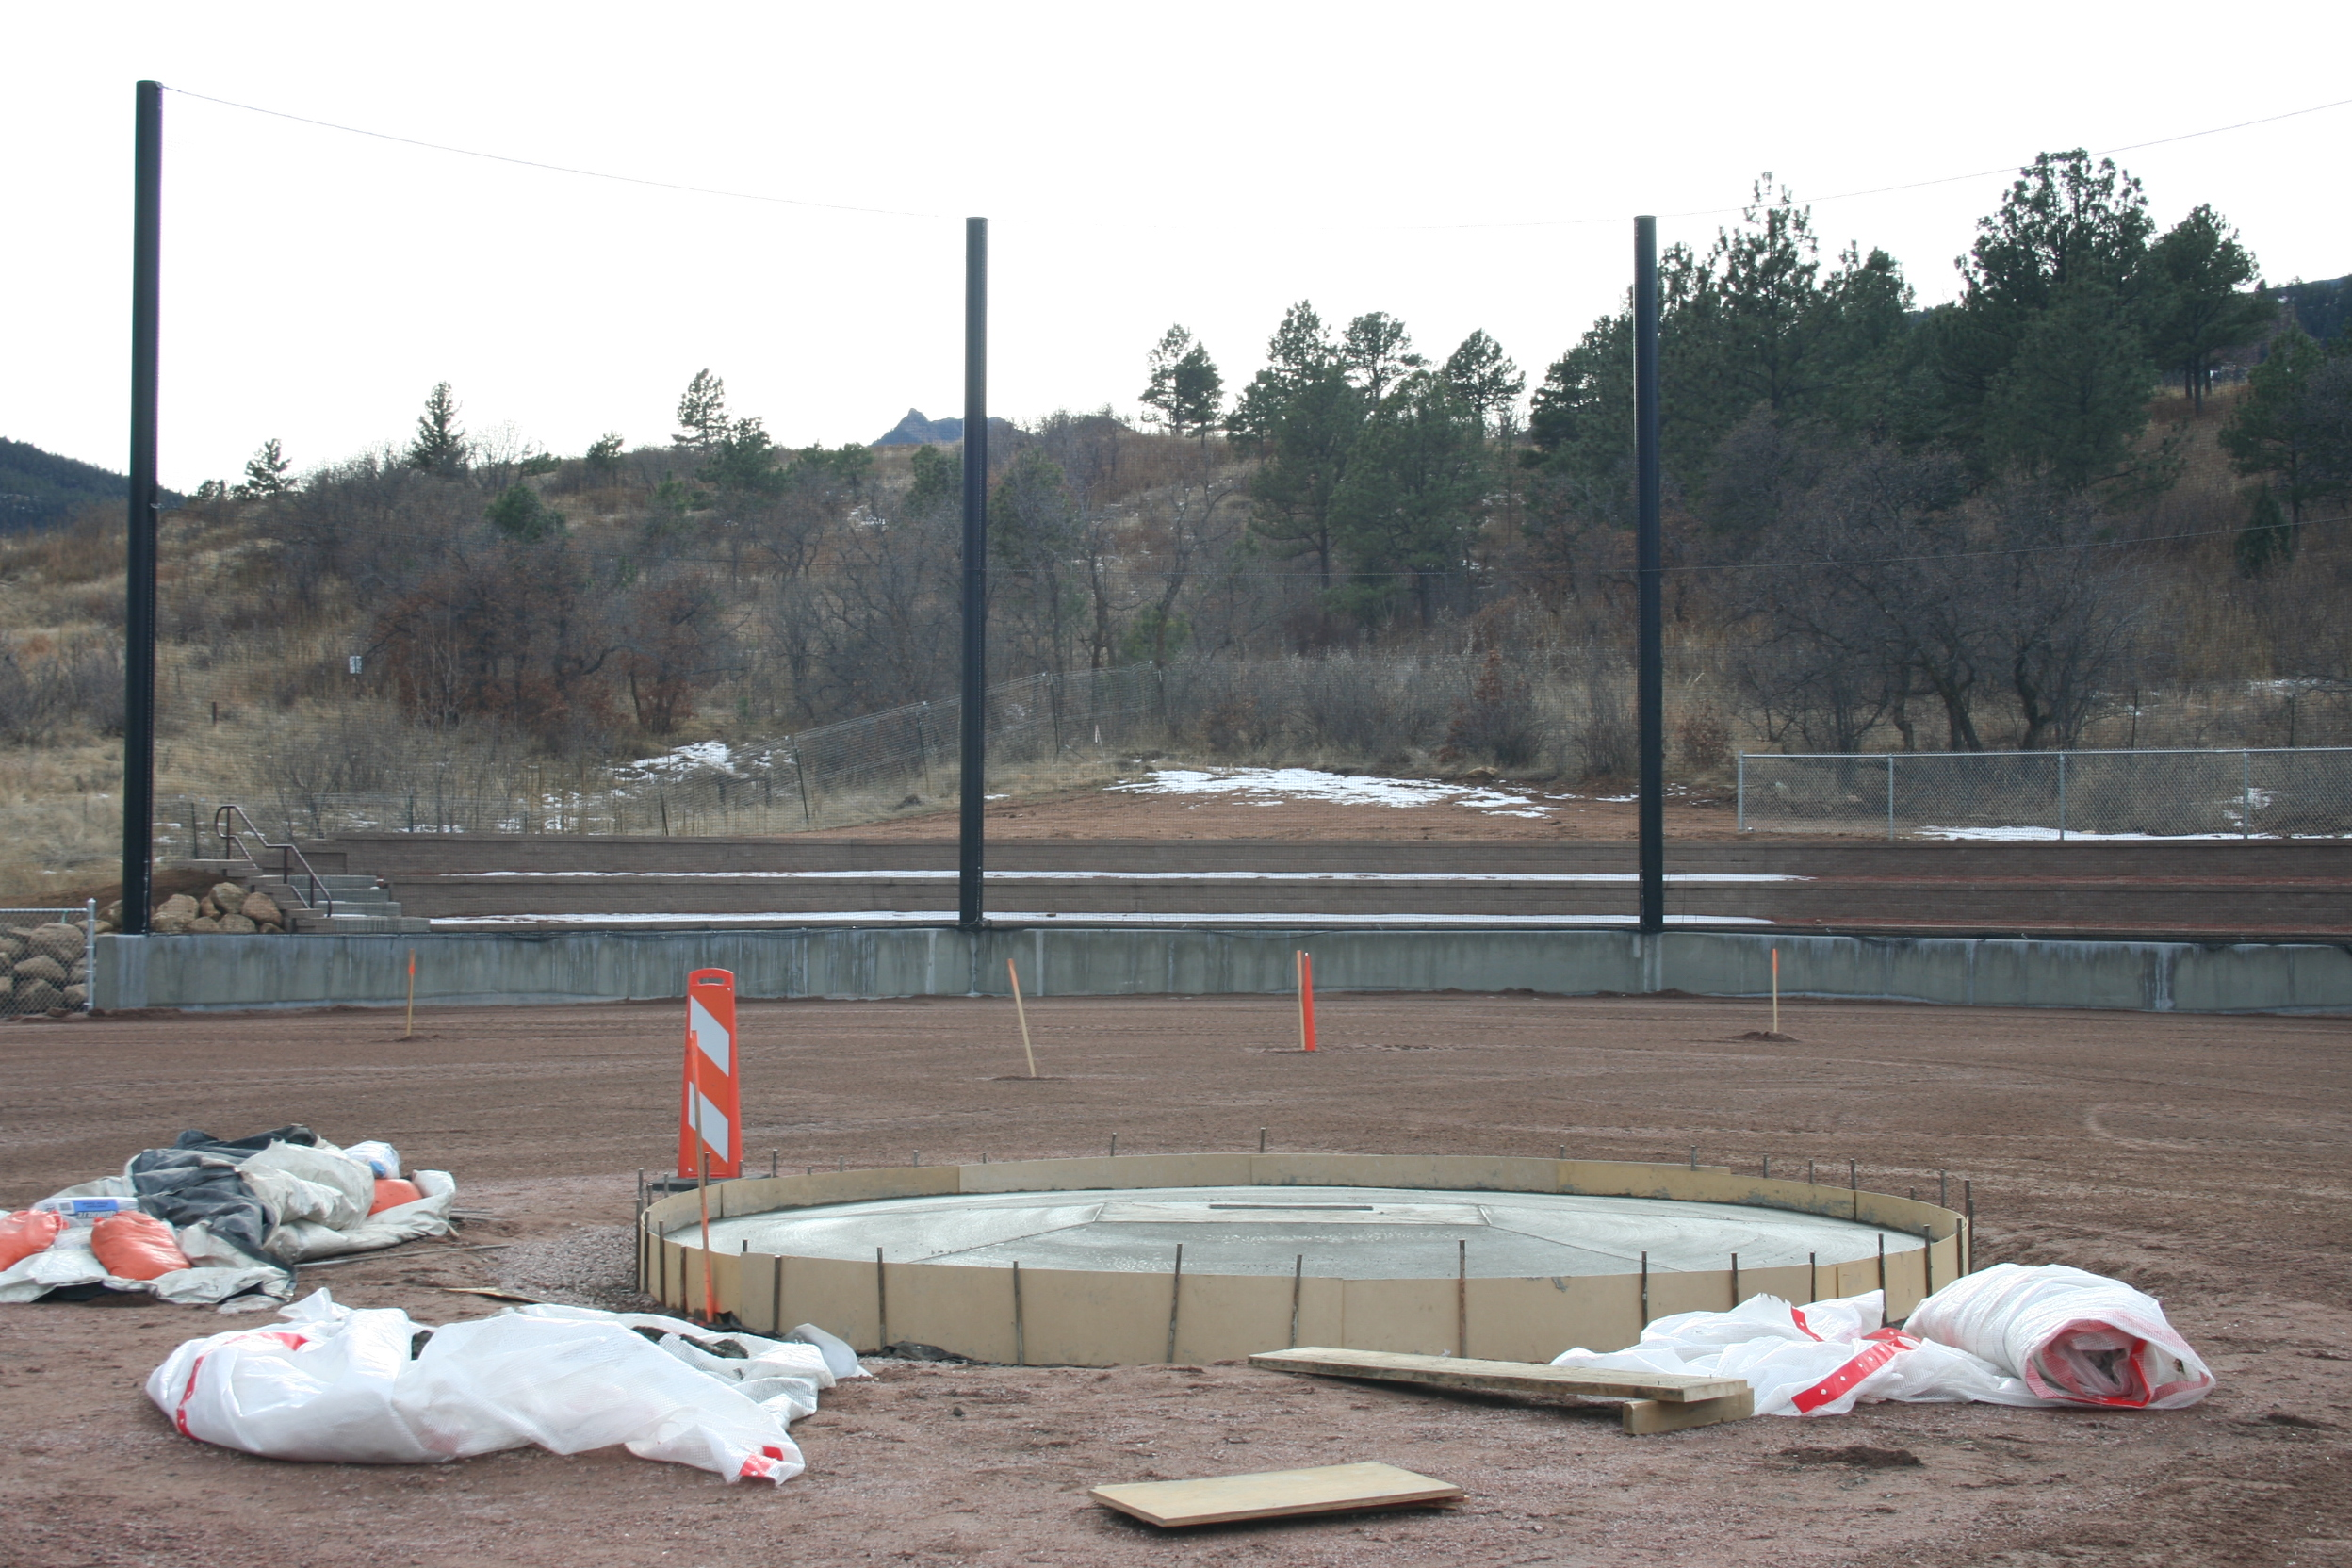 Lots of progress is being made on the new baseball field.